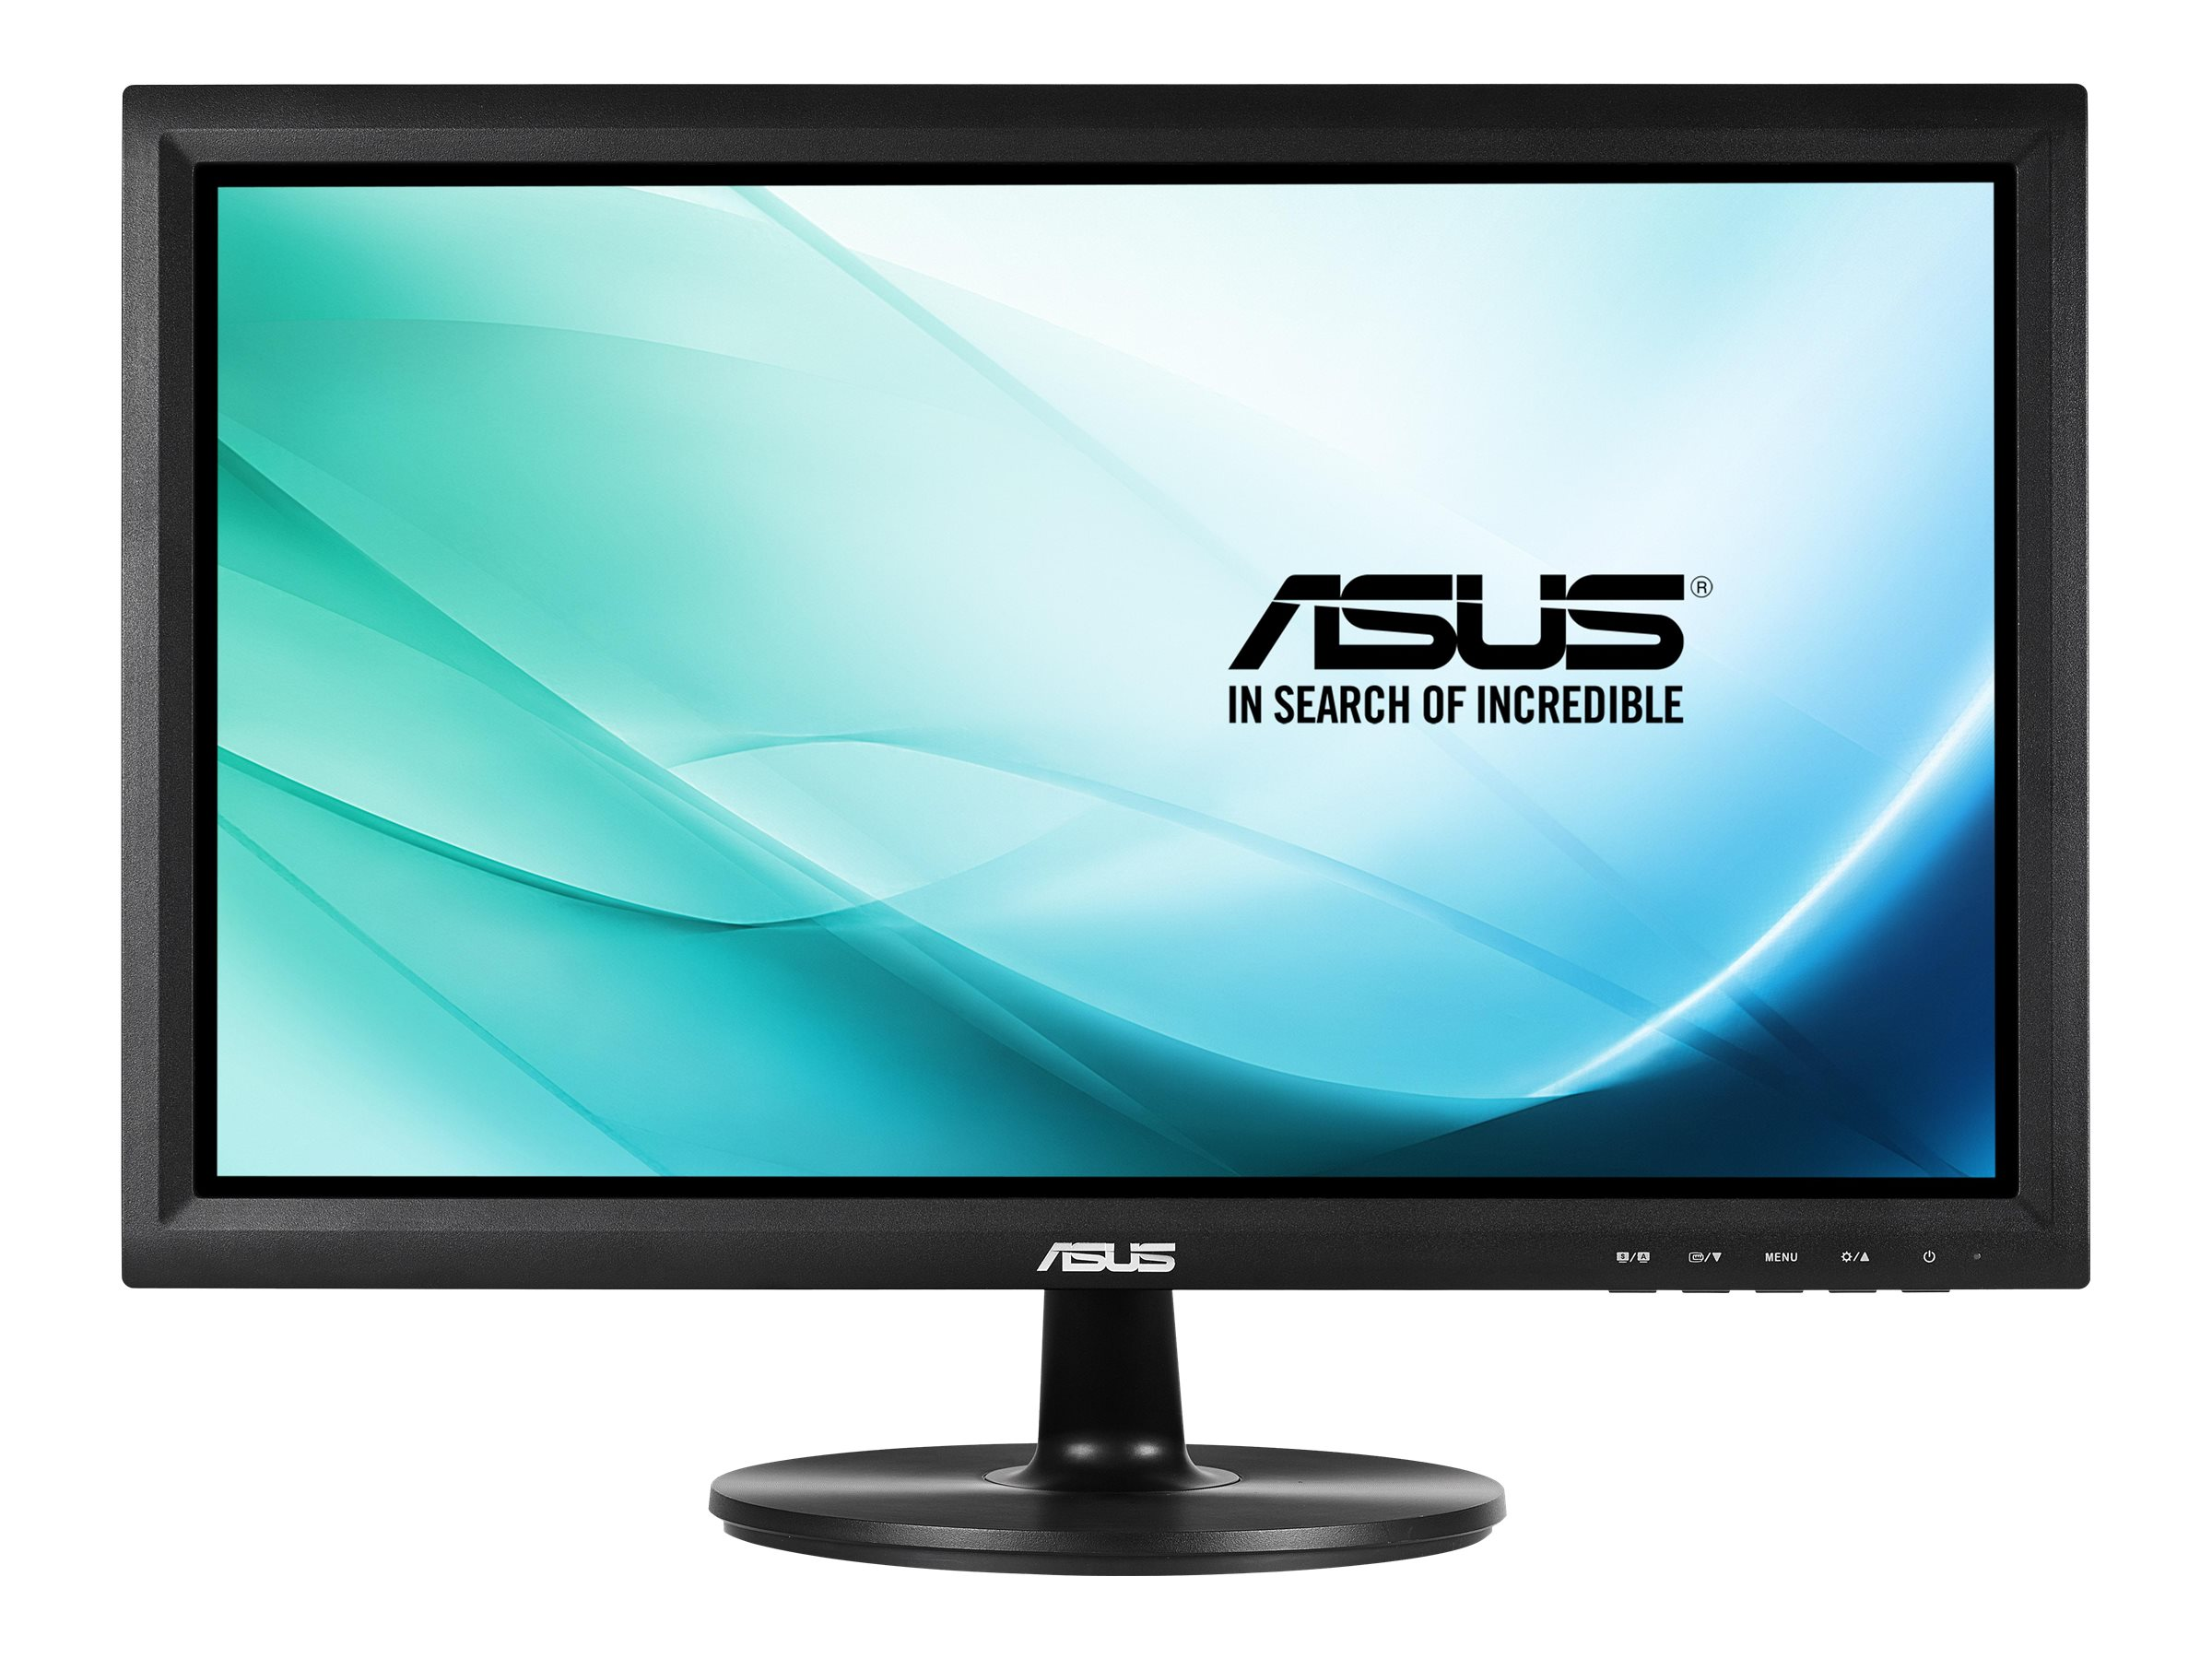 Asus 19.5 VT207N LED-LCD Touchscreen Monitor, Black, VT207N, 17588656, Monitors - LCD